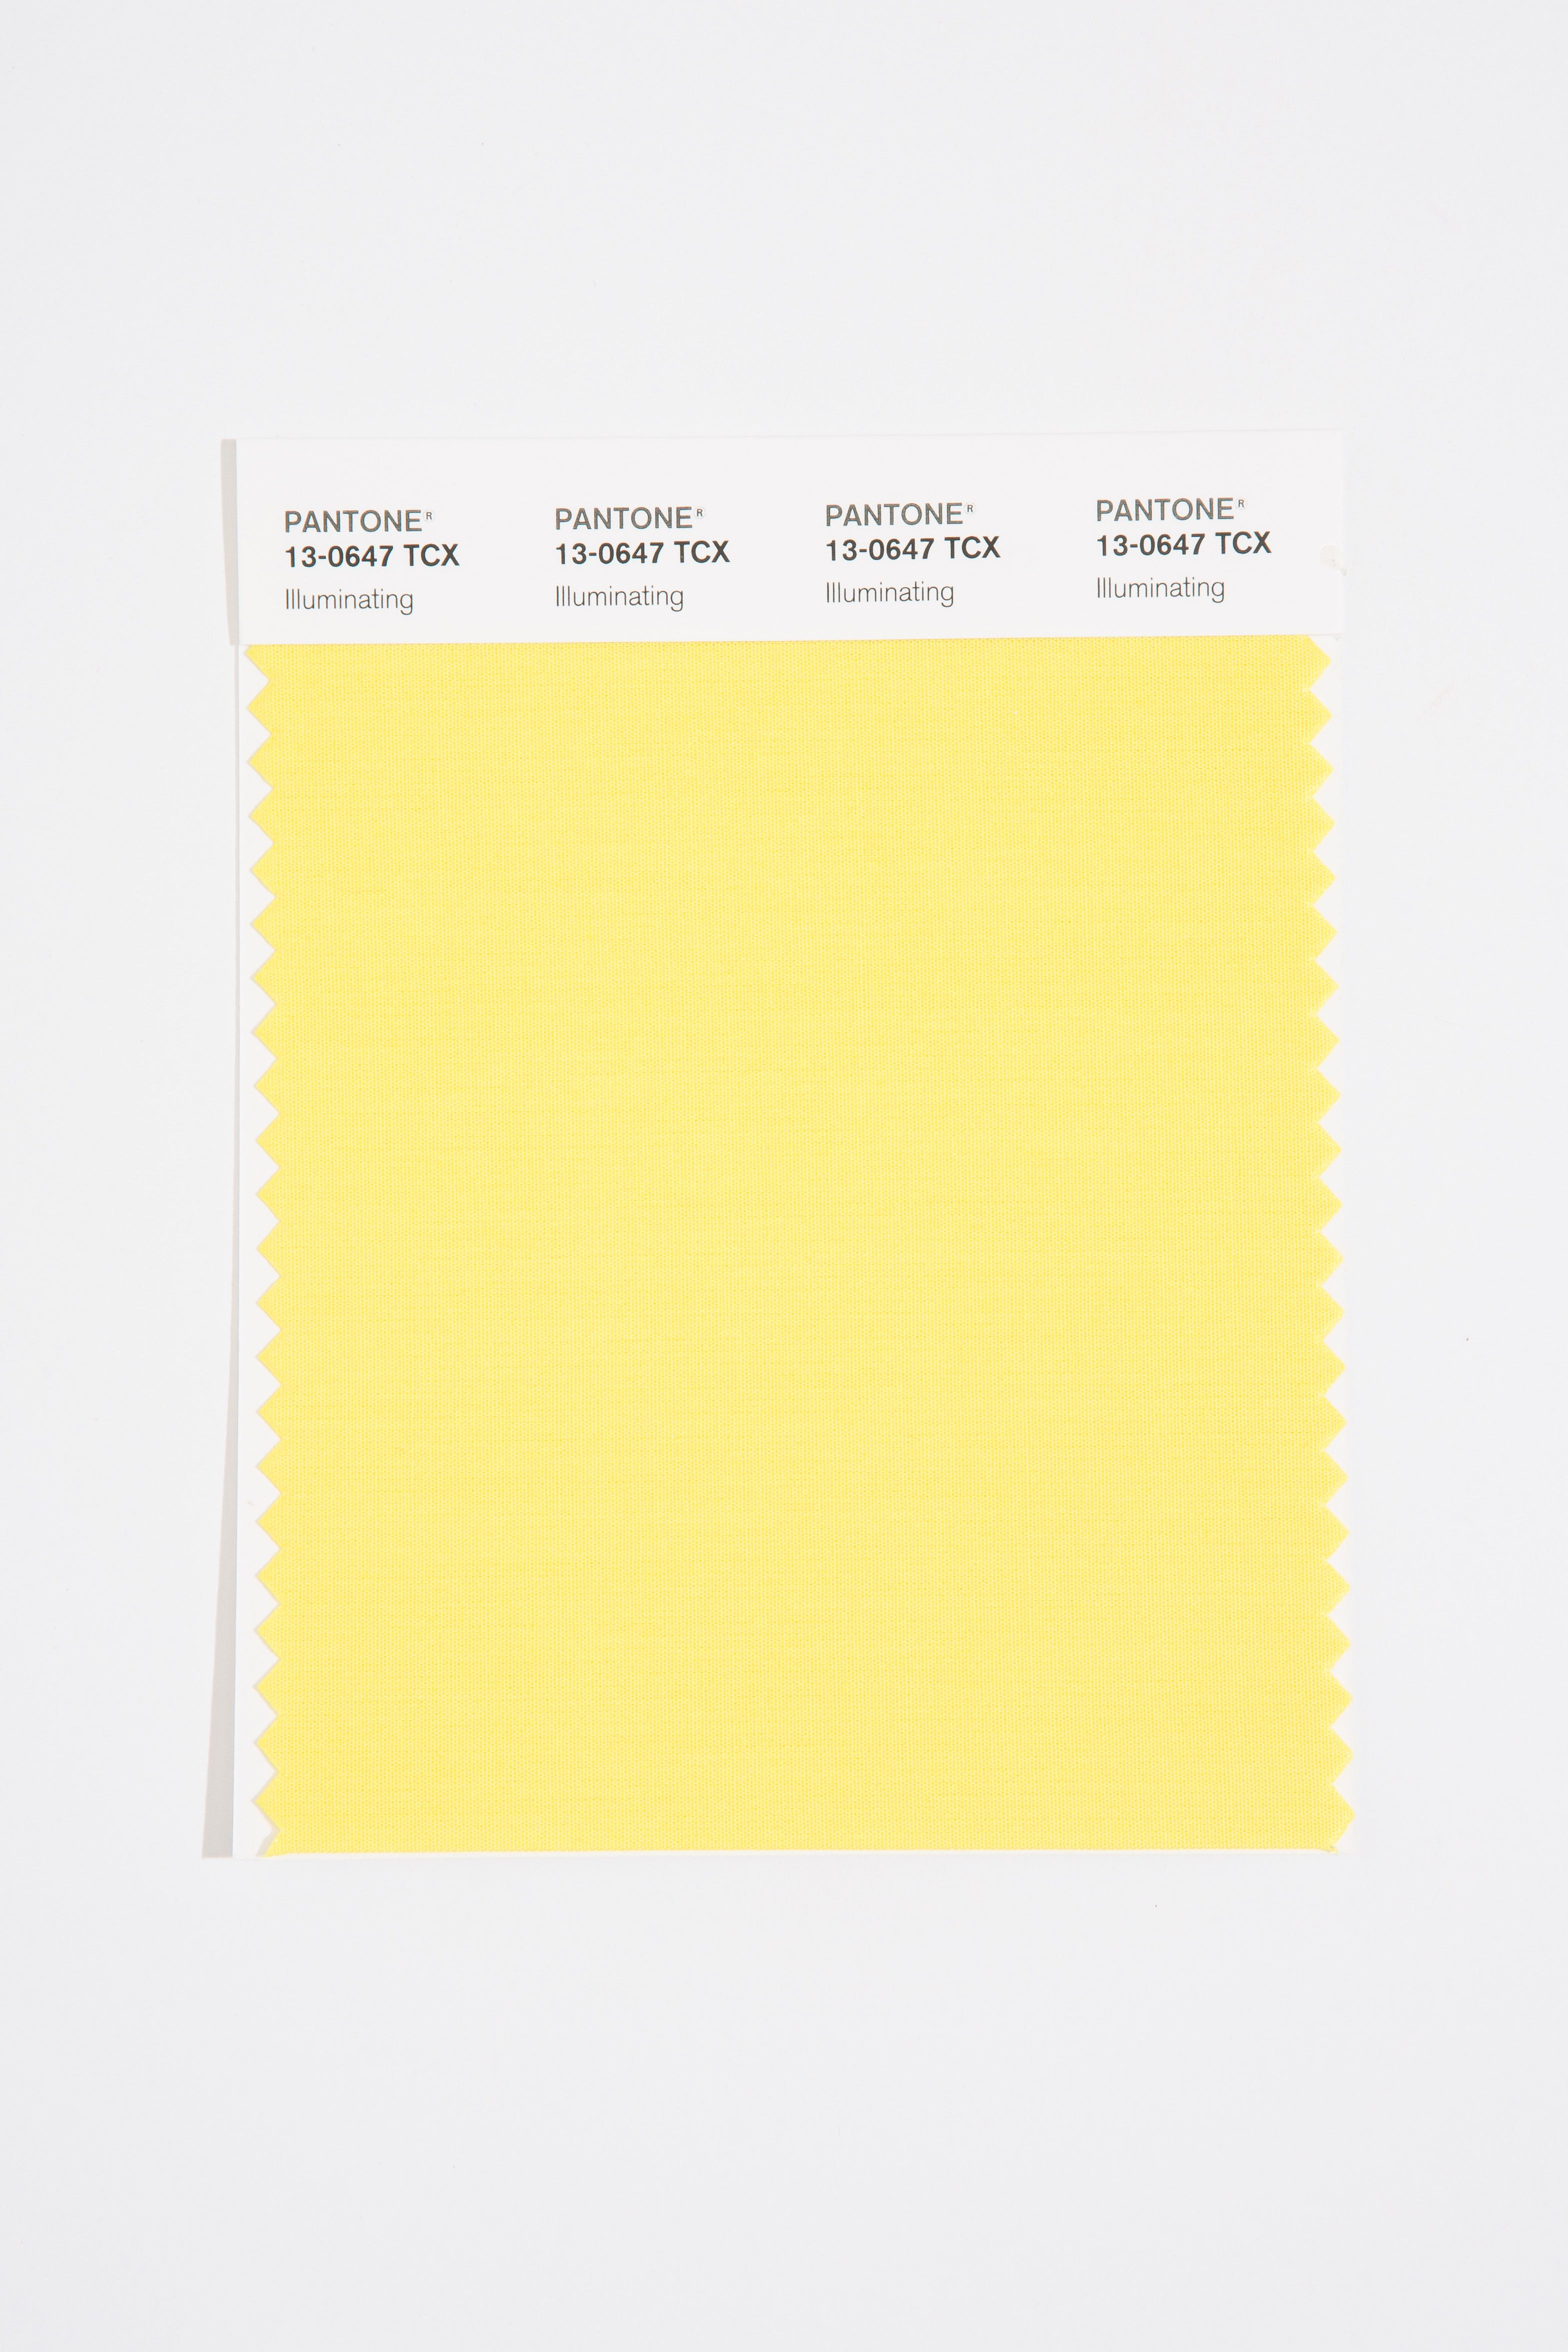 Illuminating is a color that represents sunshine. (Image: Pantone)